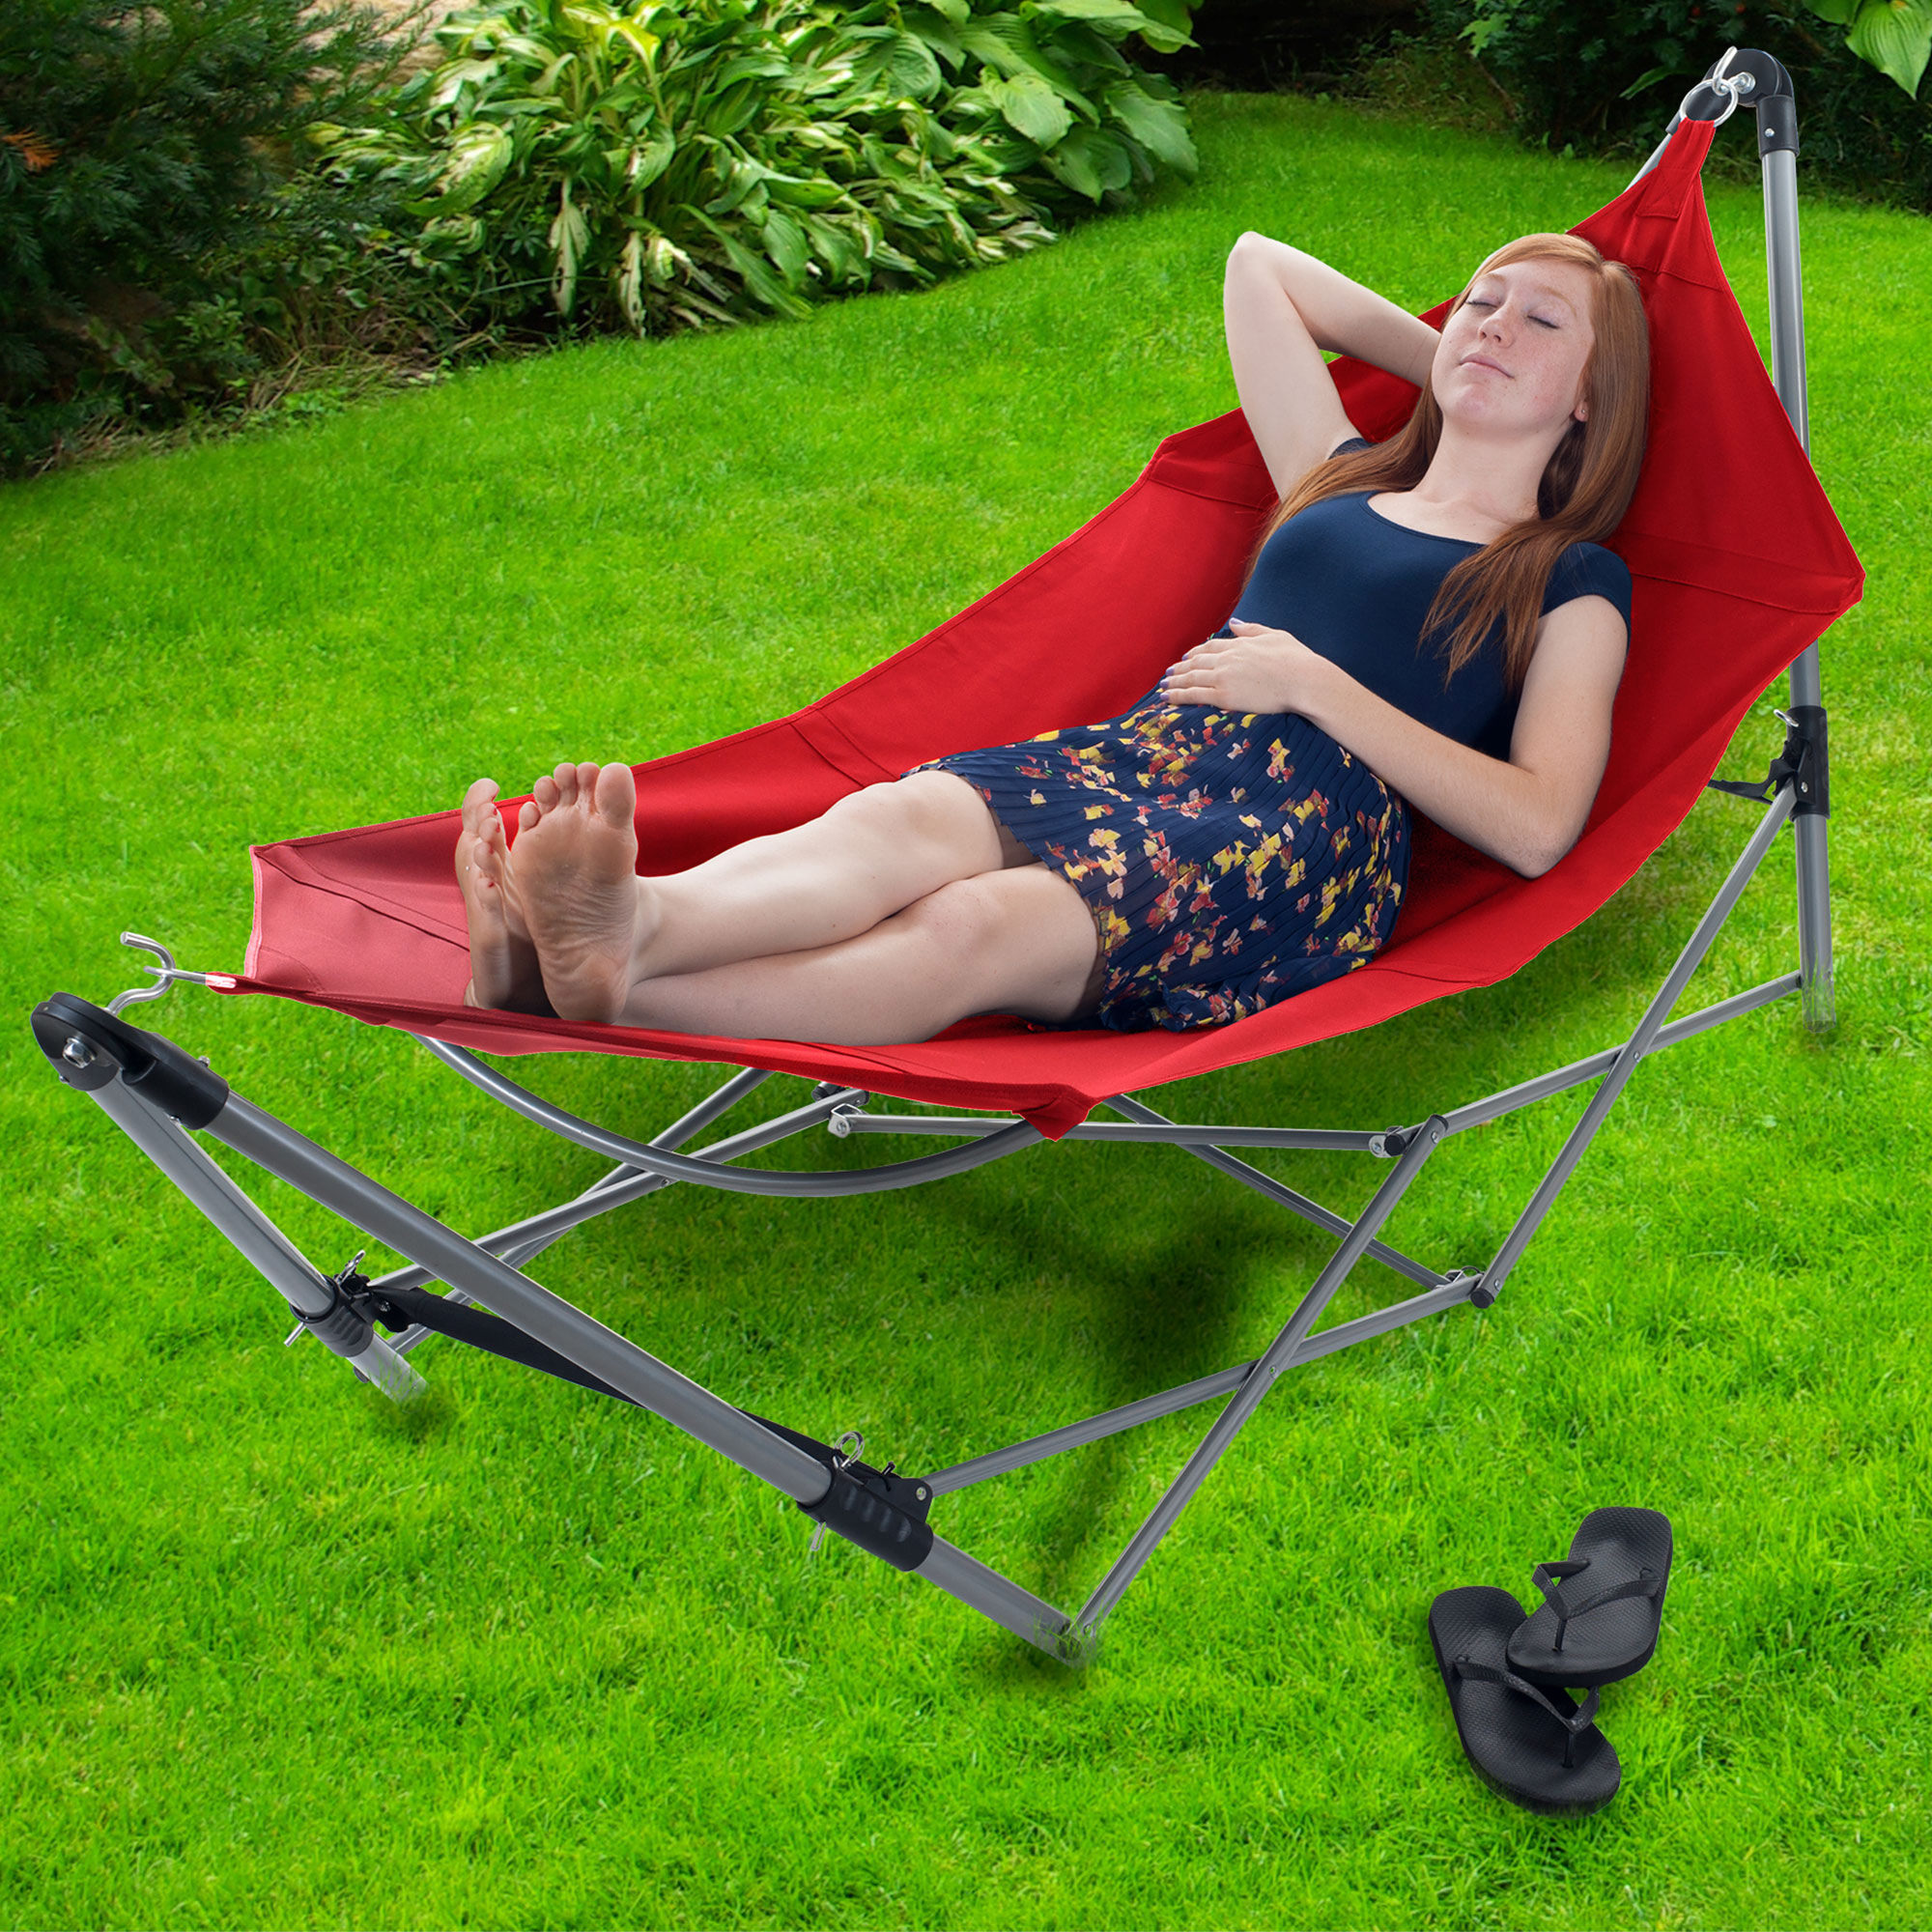 chain seat veloclub hanging porch counter colors formock alone bench ideas stand hammock deluxe and rope modern high xx patrofi co chair swing